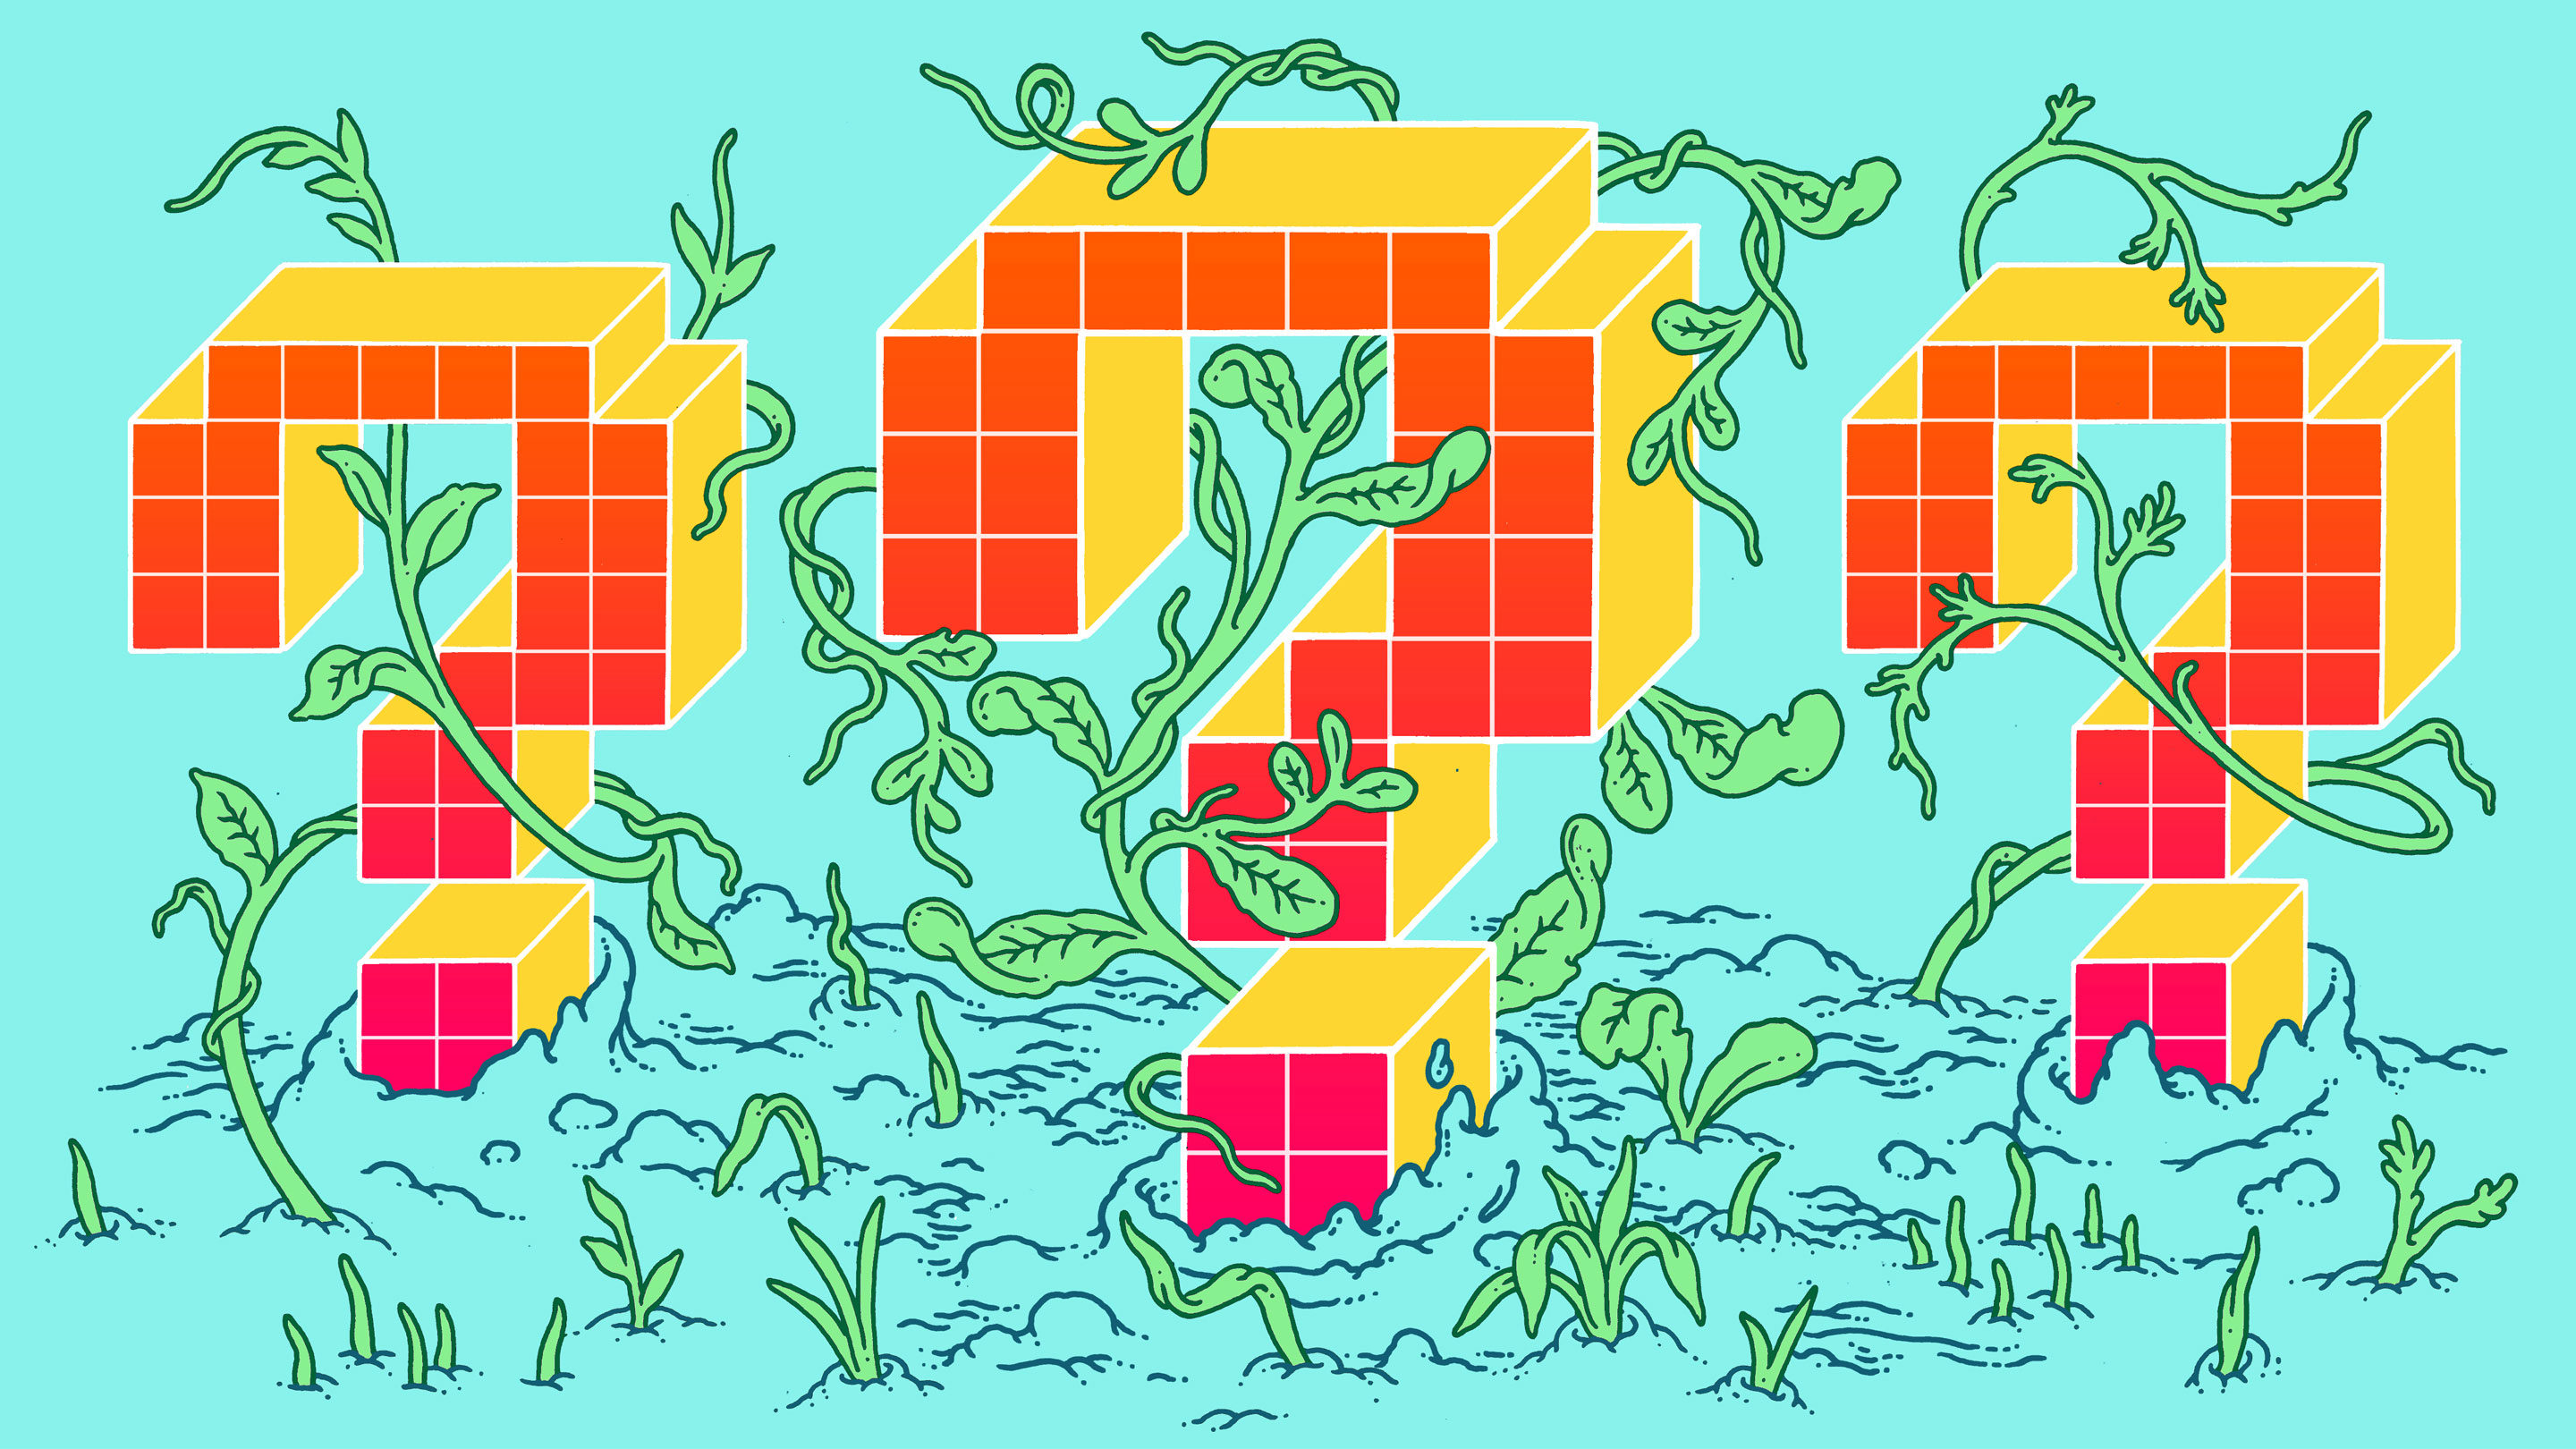 Wired to Learn: The Next AI | Quanta Magazine